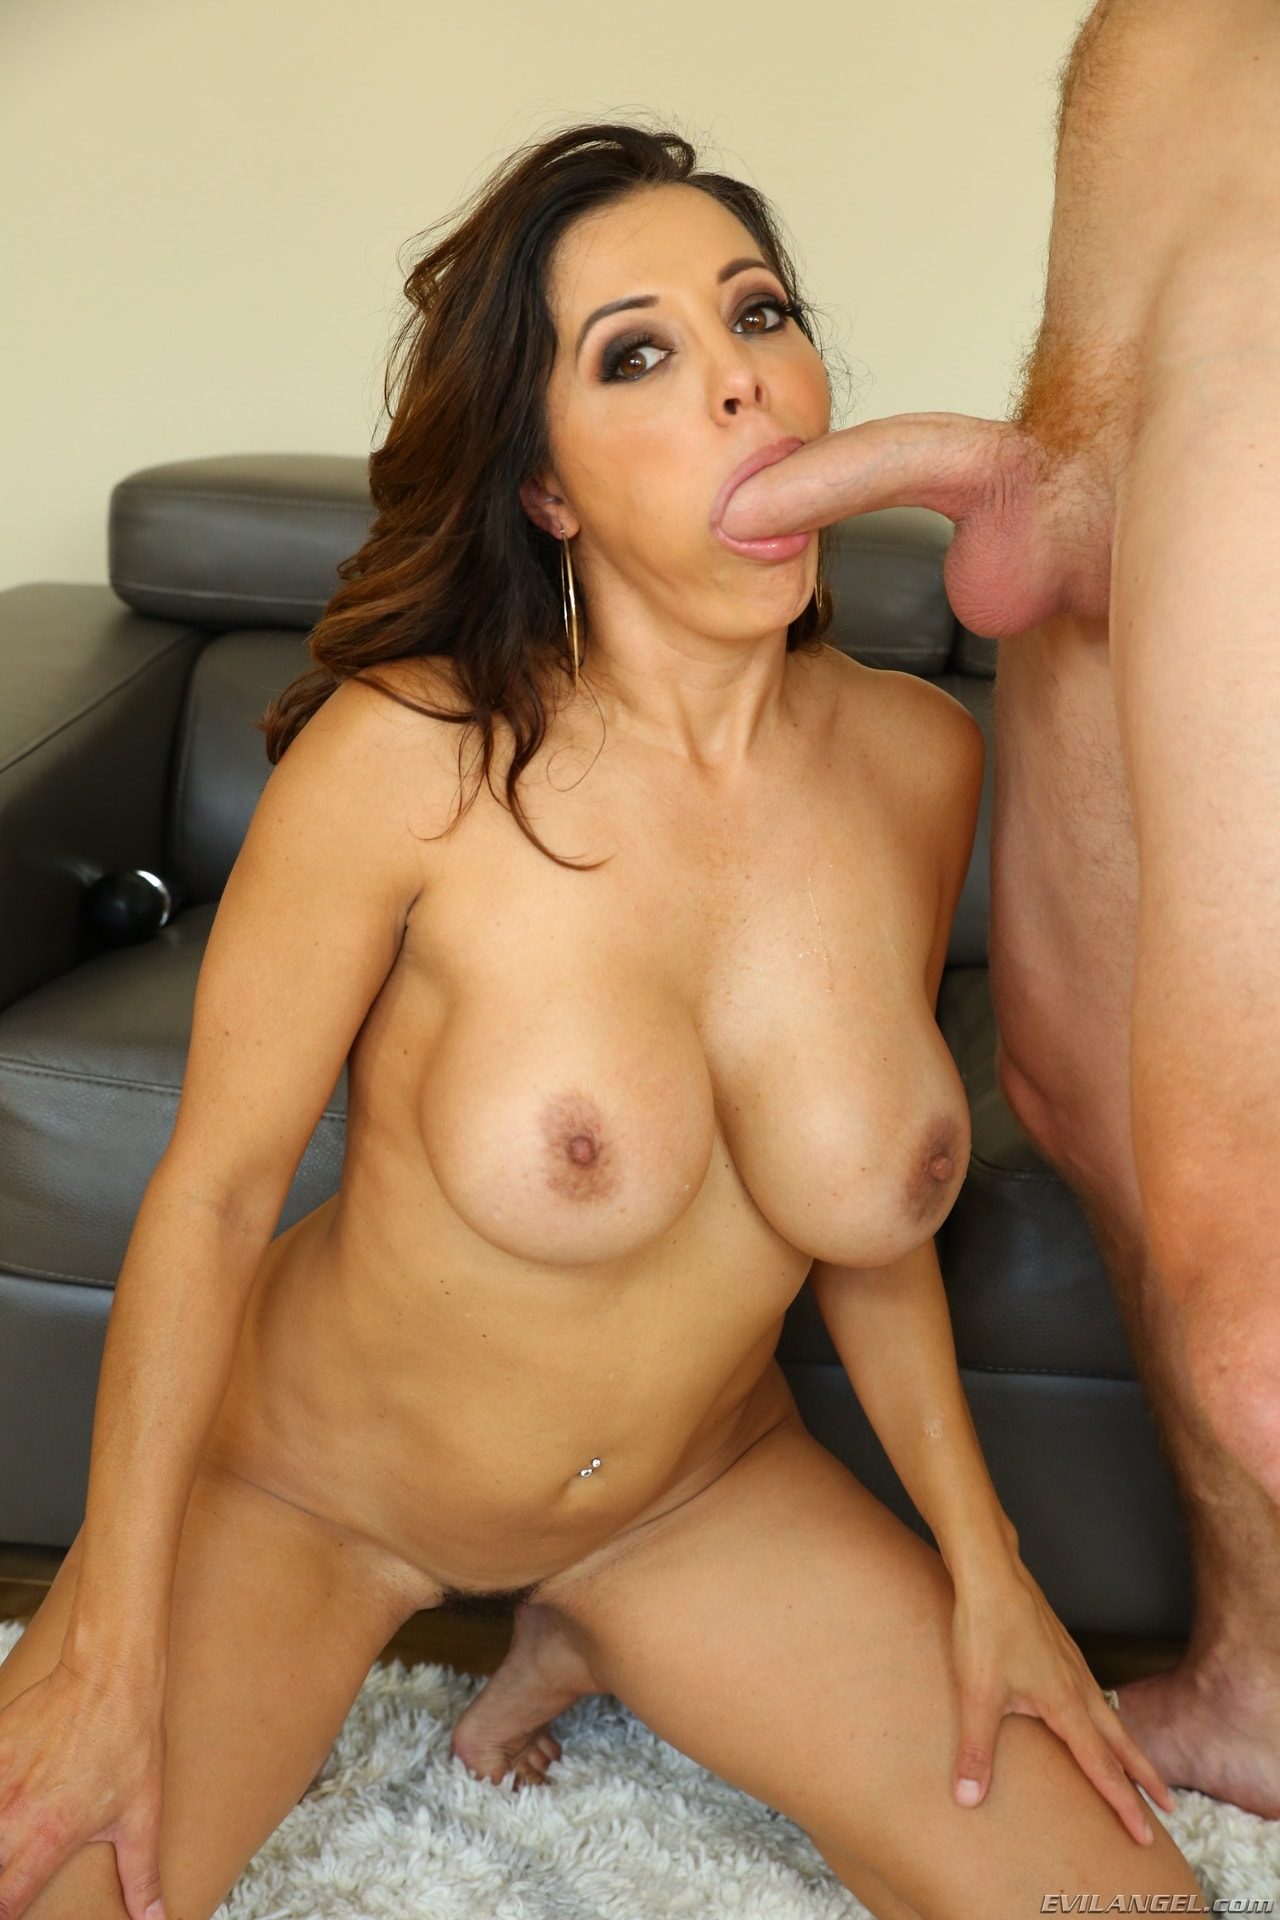 Evil Angel 'Is A HotWife 3' starring Francesca Le (Photo 12)